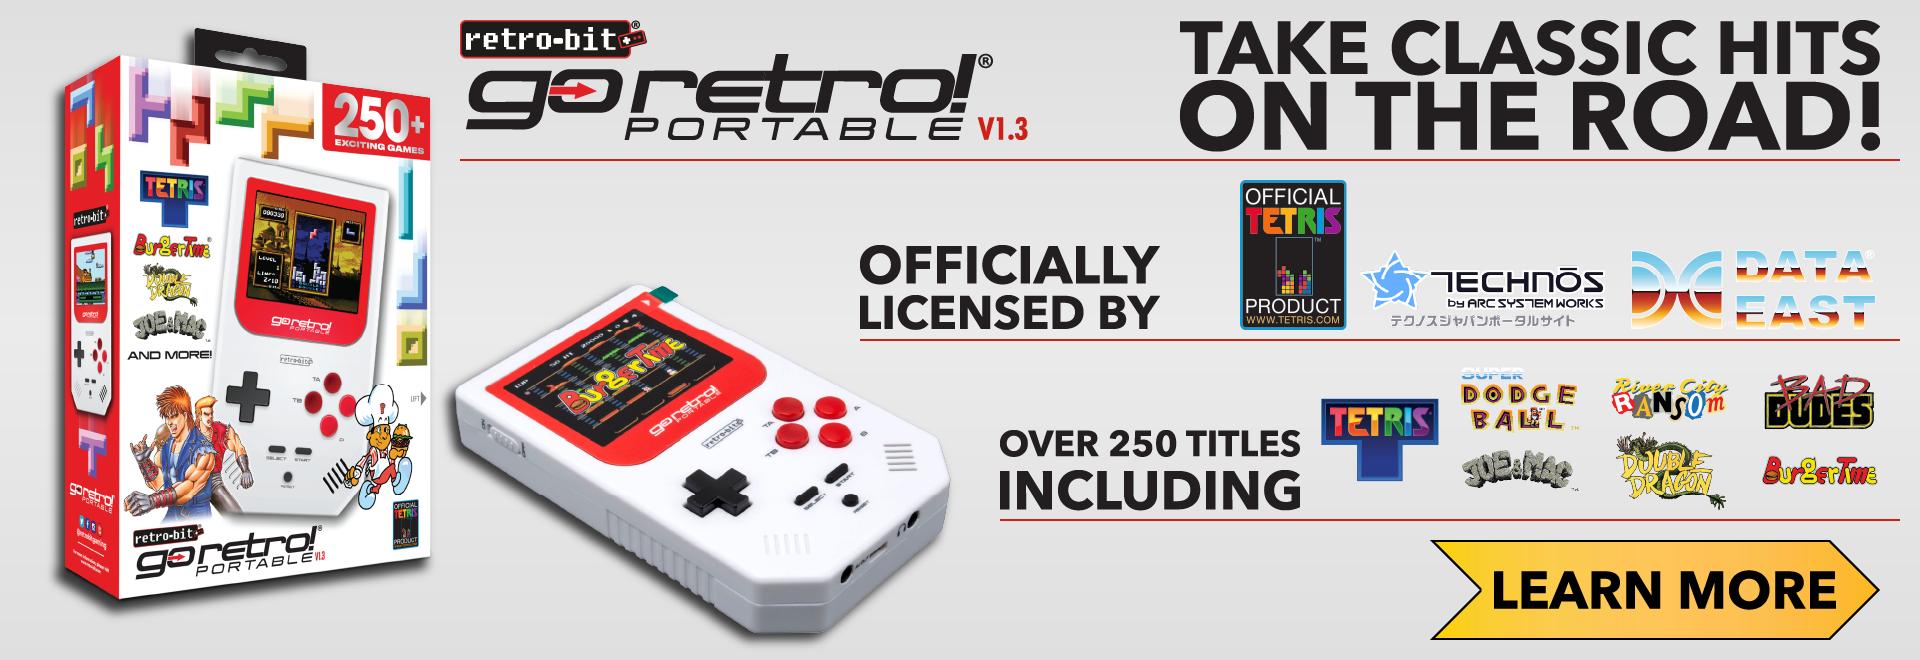 Take Classic Hits on the Road with the Go Retro Portable!